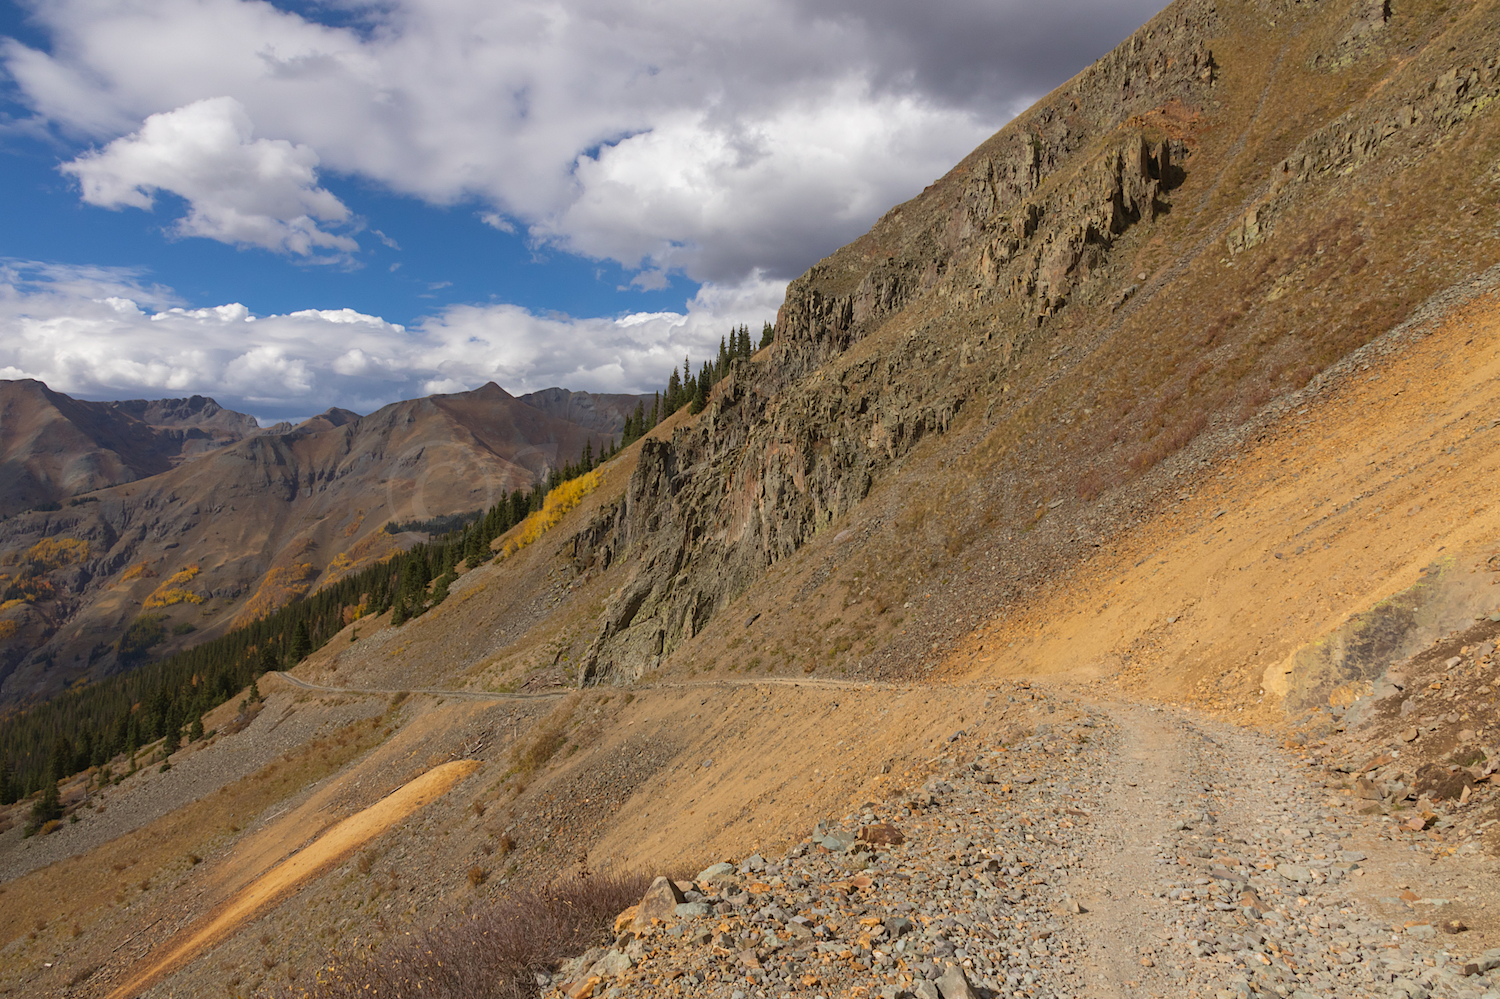 Road to Little Giant Basin, Image # 8875